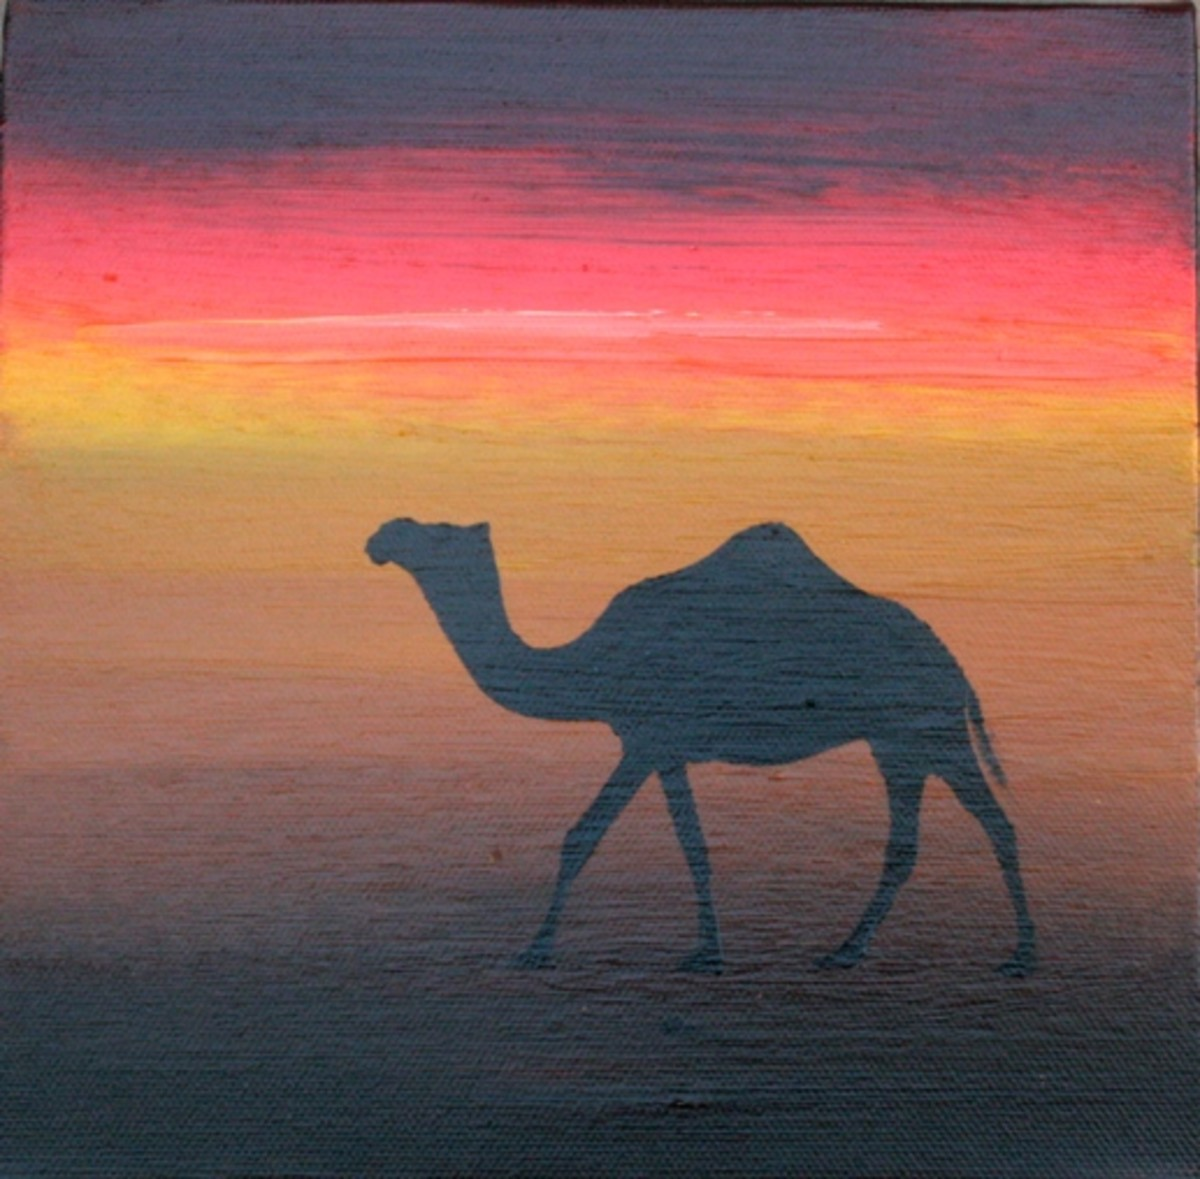 These camel paintings are very popular with tourists in particular and as gifts for people as they are a reminder of the area they were bought.